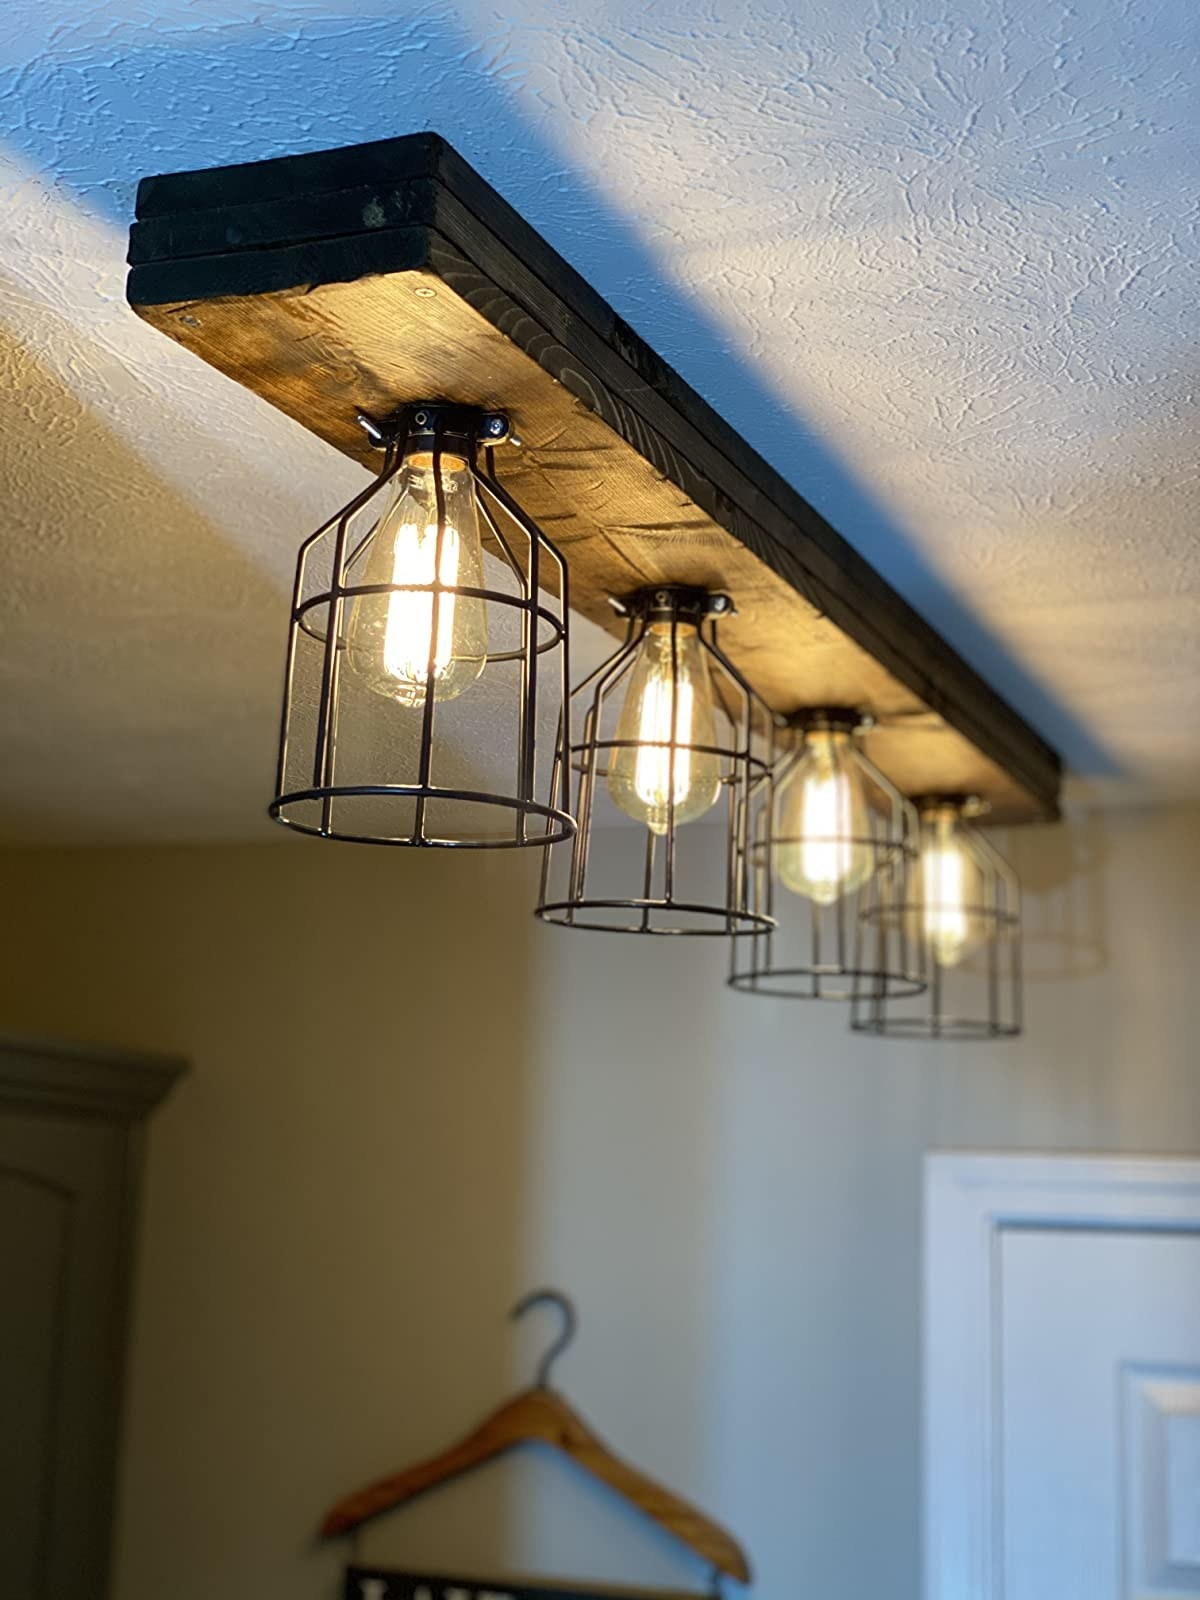 the four cage light fixtures